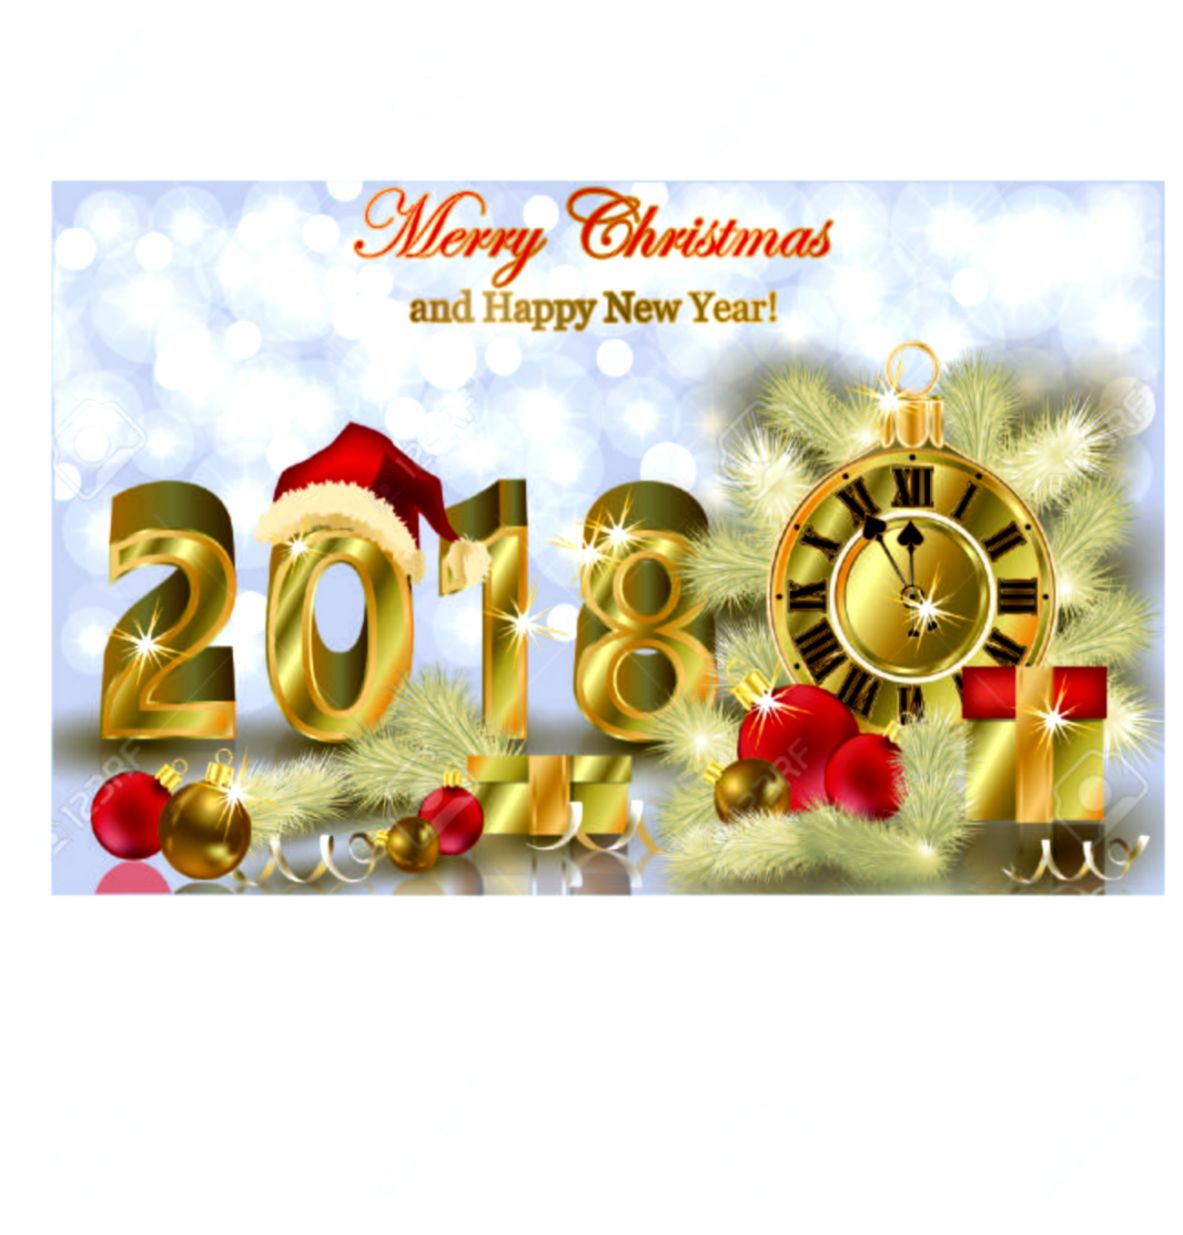 merry christmas and happy new year 2018 wallpaper vector